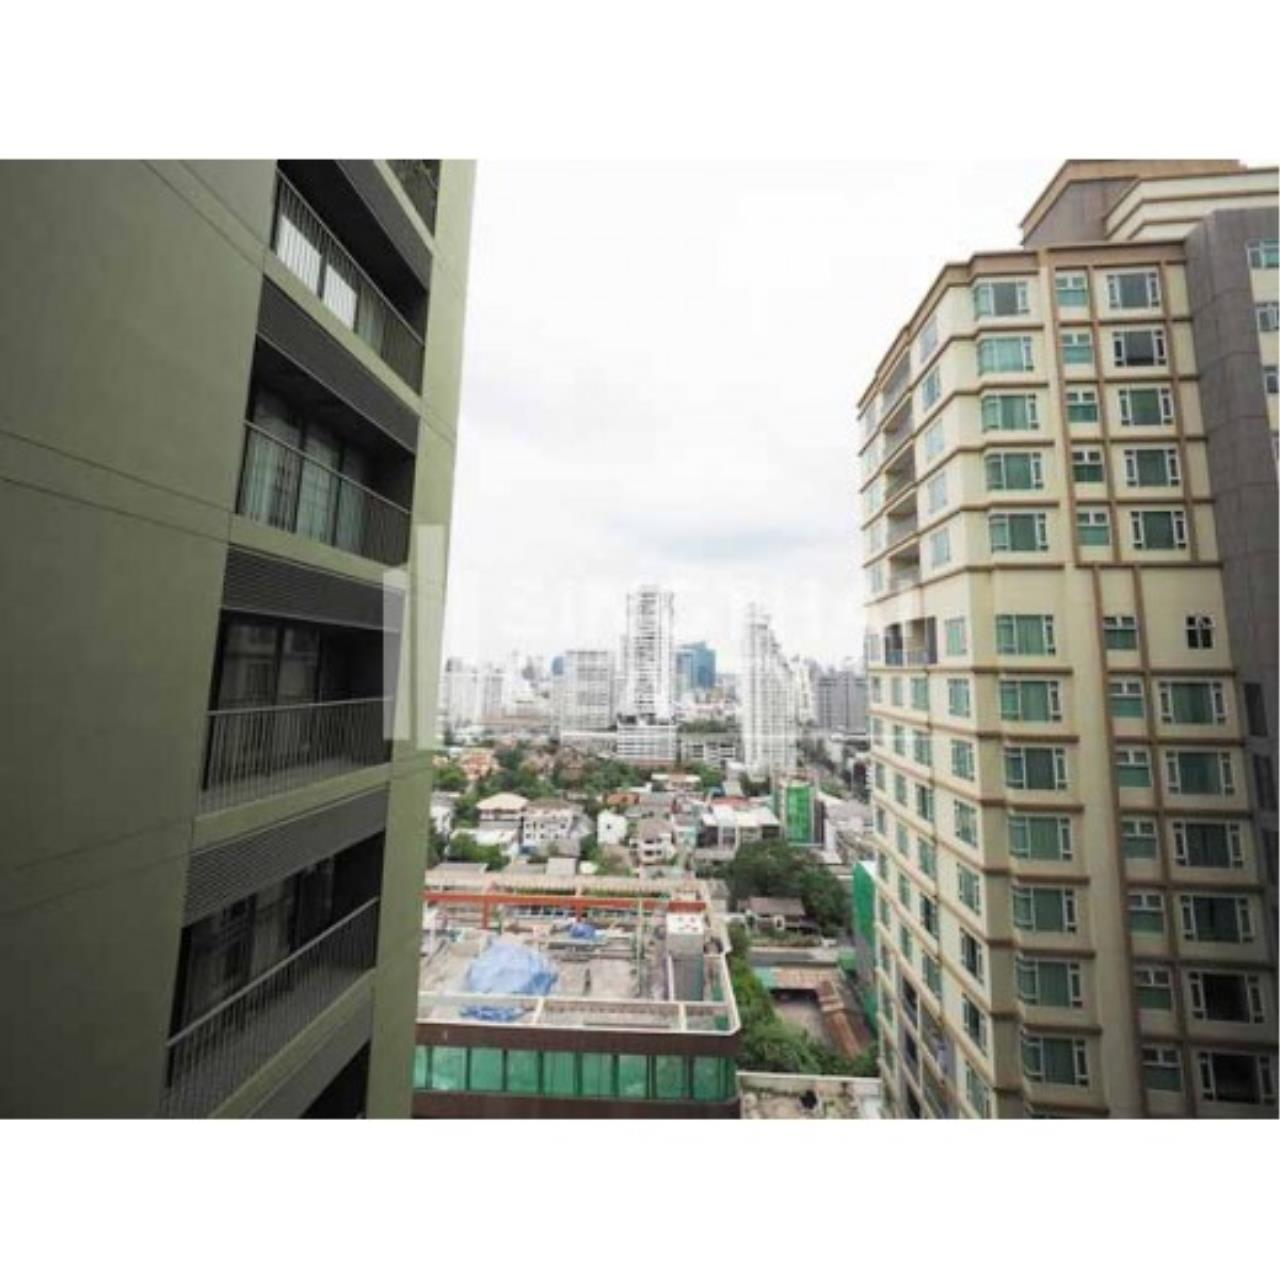 Quality Life Property Agency's R E N T ! NOBLE SOLO | 1 BED 1 BATH | 52 SQ. M. 7 FLOOR 1